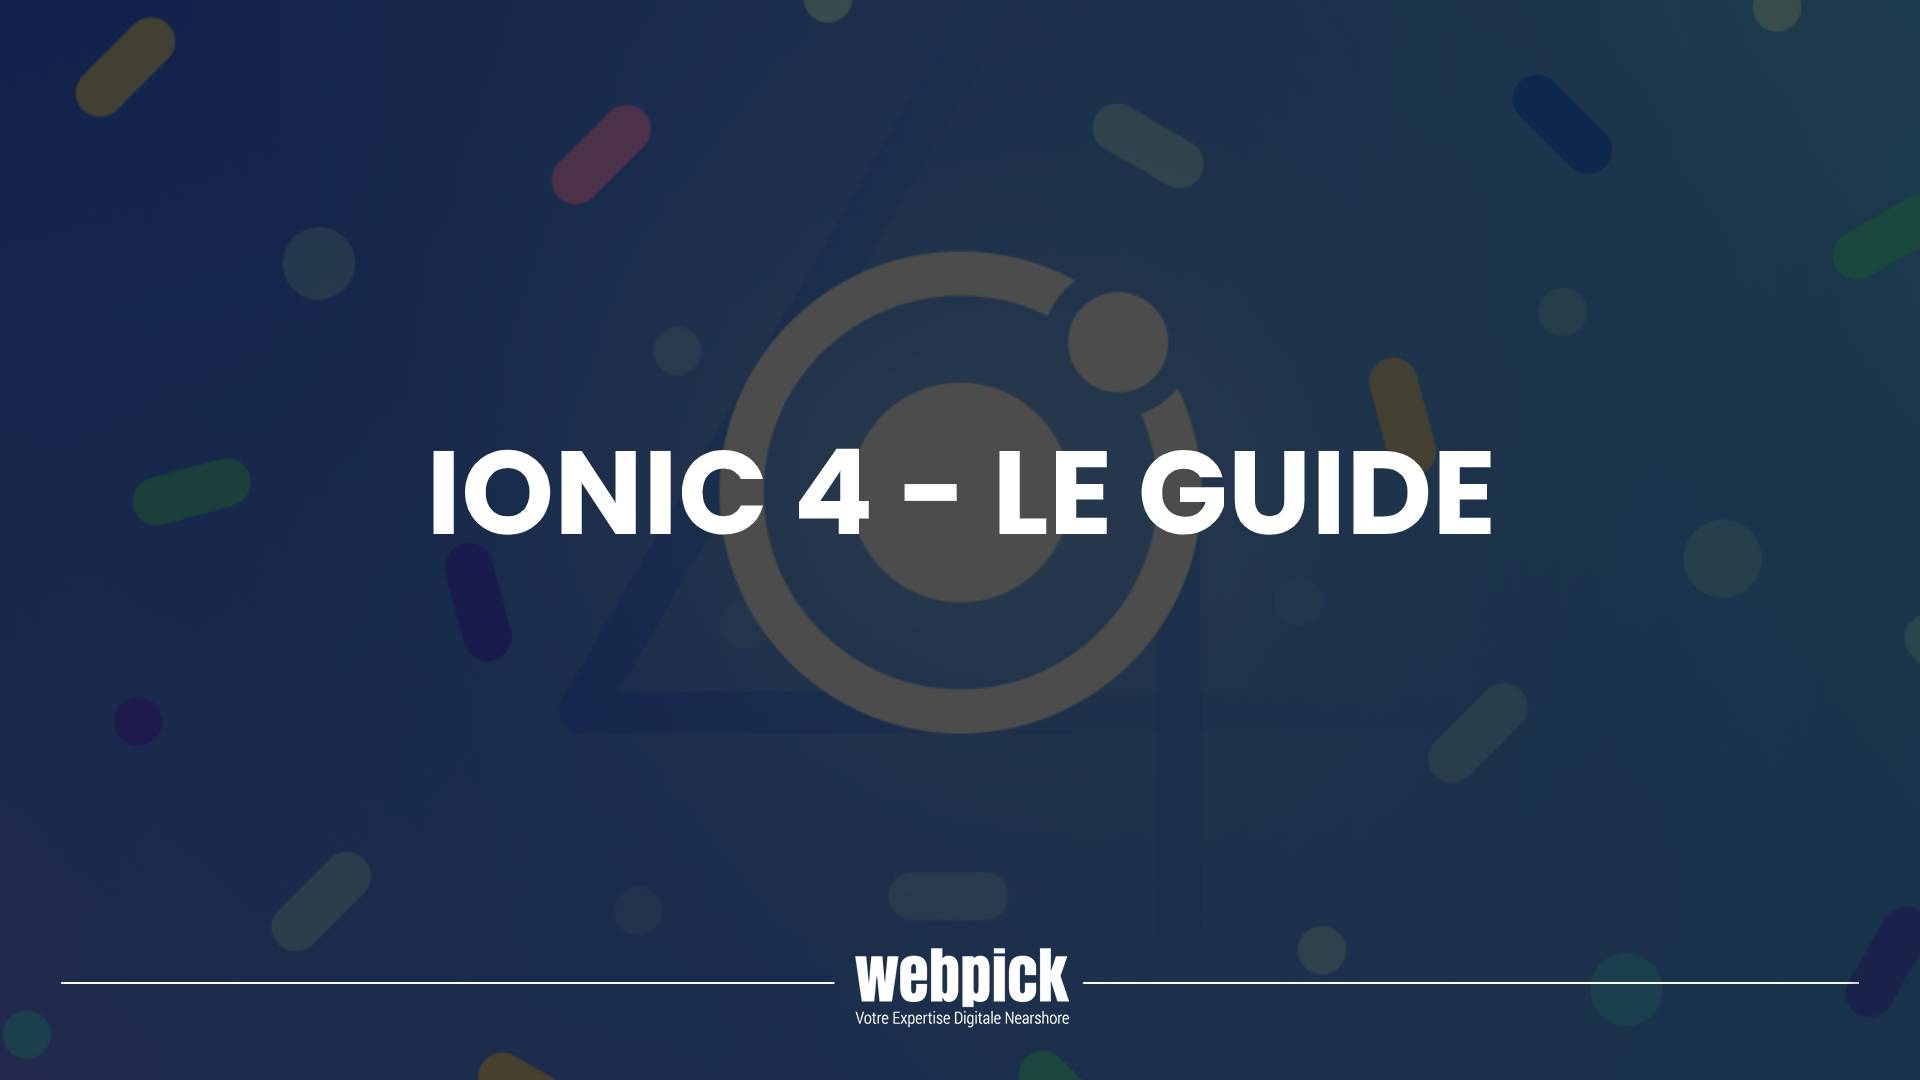 Ionic 4 – Le Guide